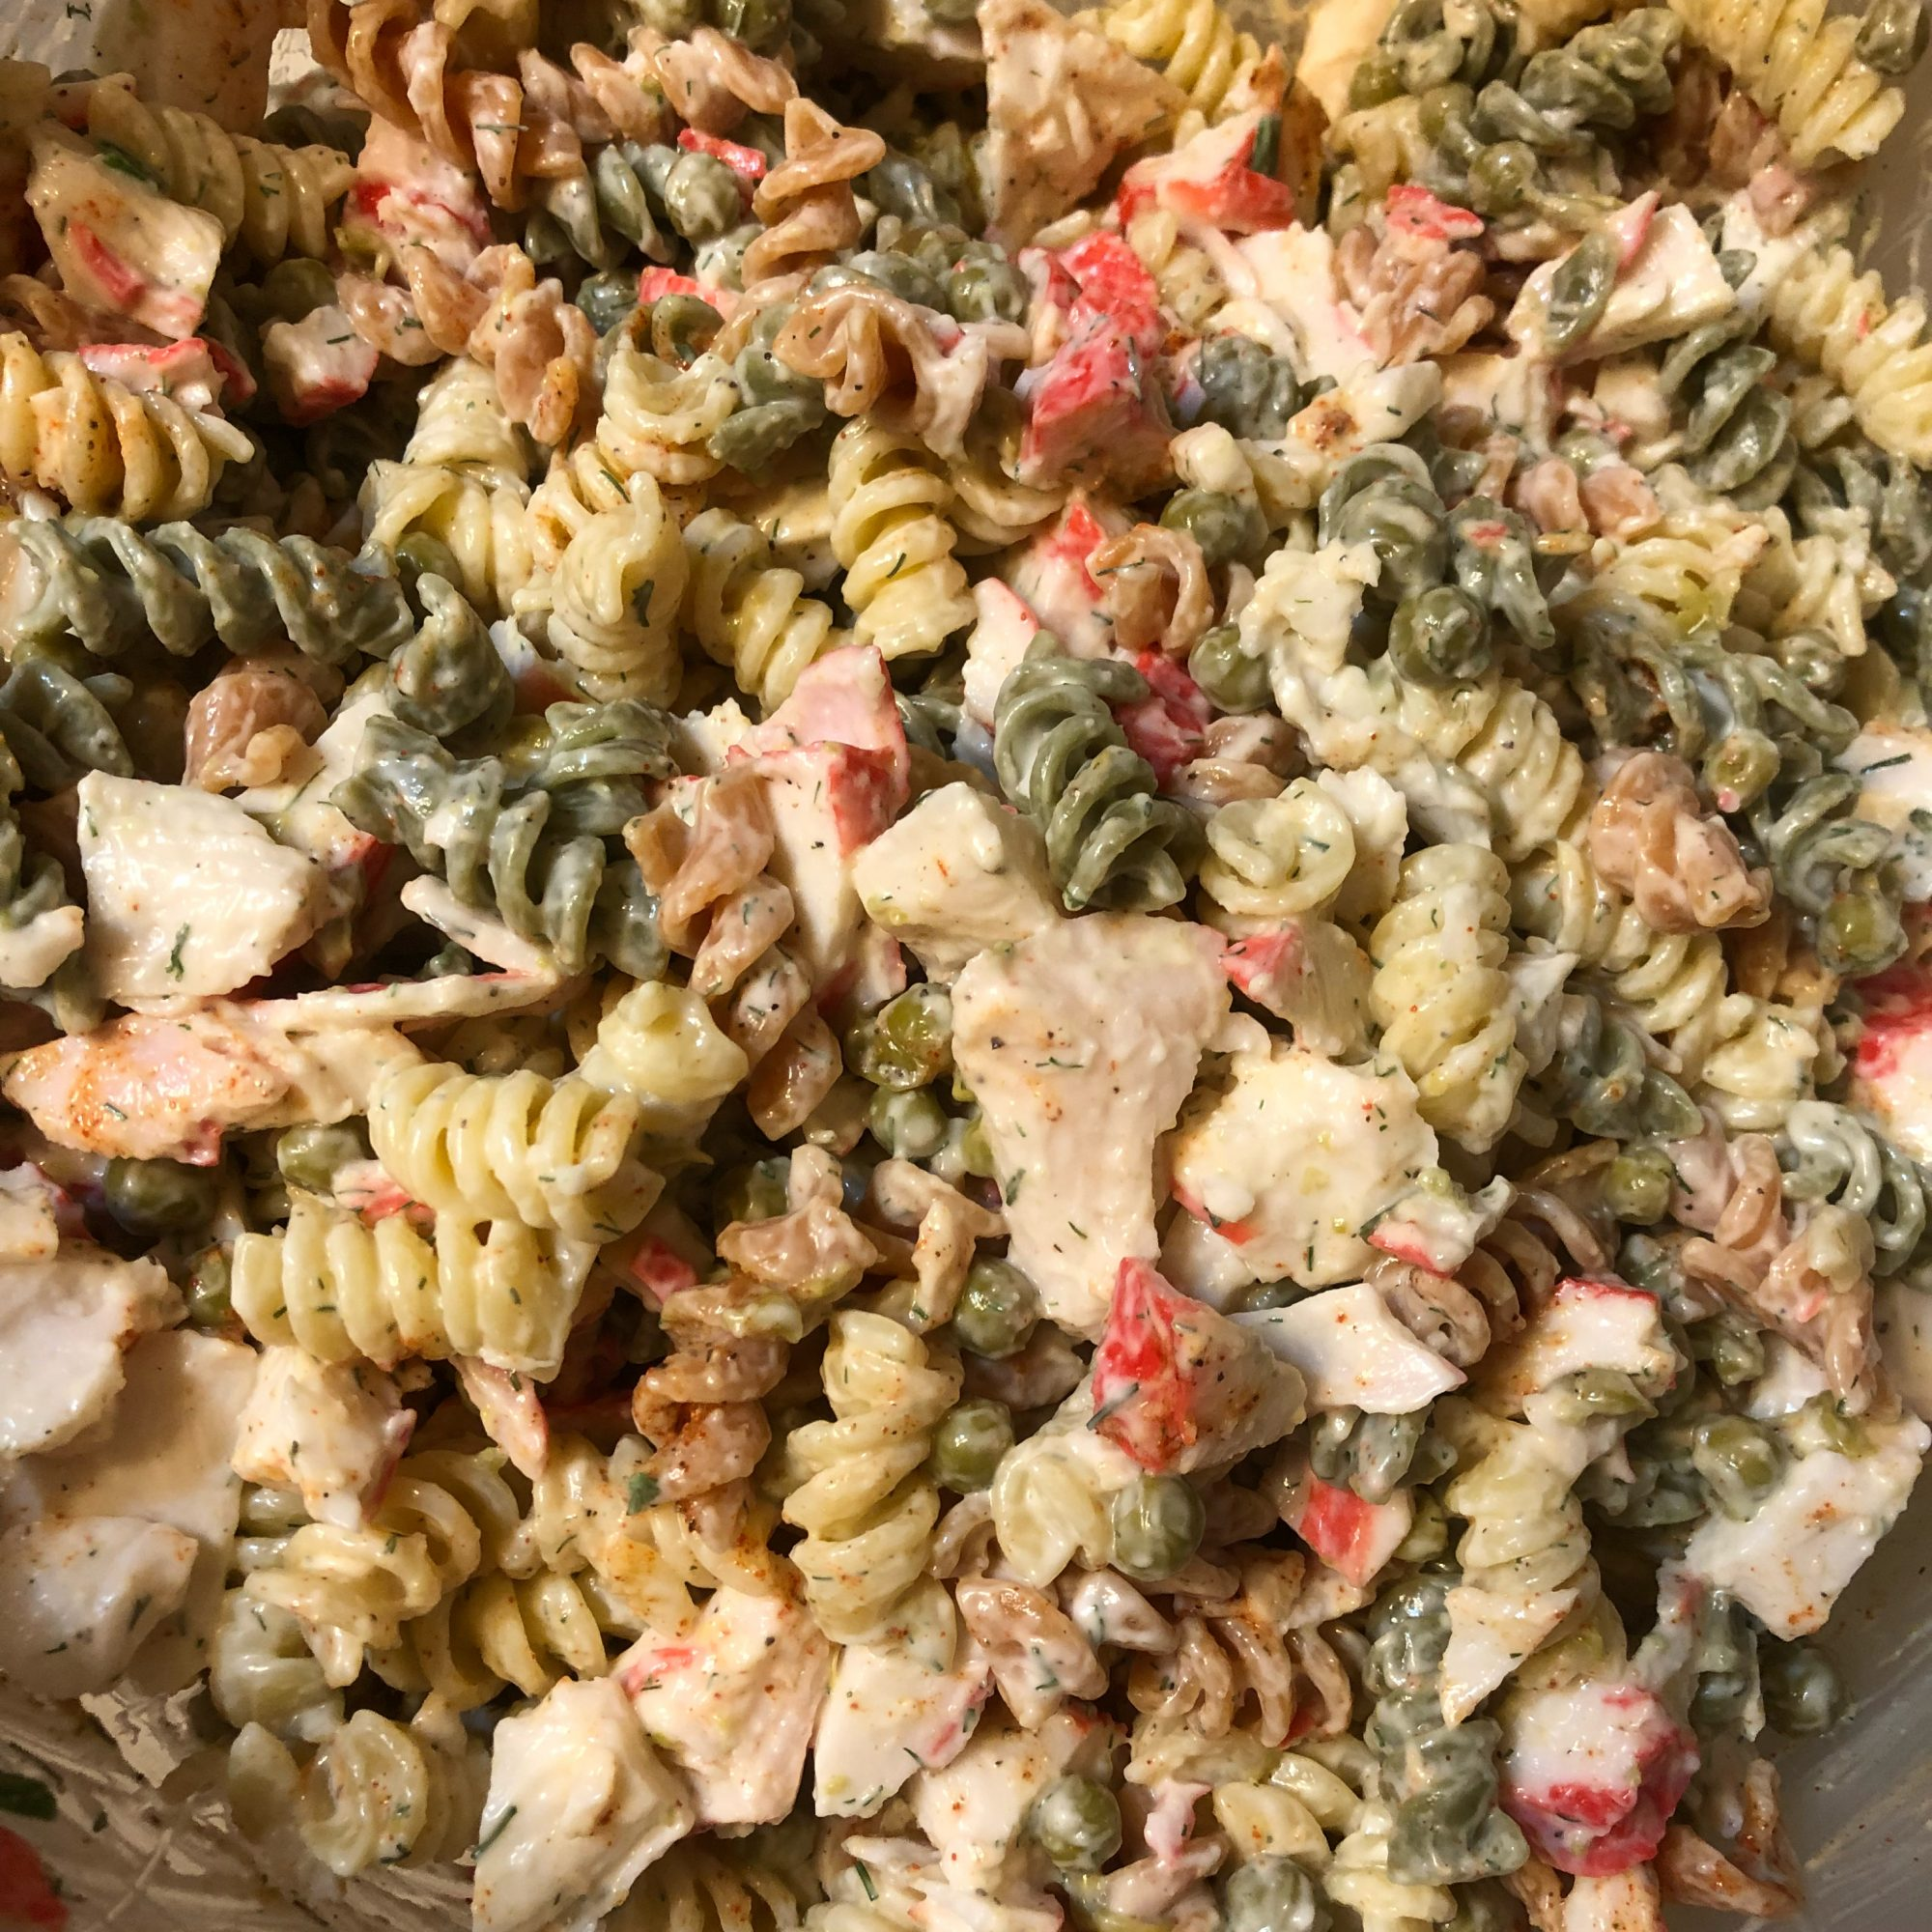 """""""Loved this salad!"""" exclaims reviewer spice of life. """"We did make a couple of changes. We doubled the imitation crabmeat, added about 4 oz. of halved grape tomatoes, and used creamy Caesar salad dressing instead of mayo."""""""